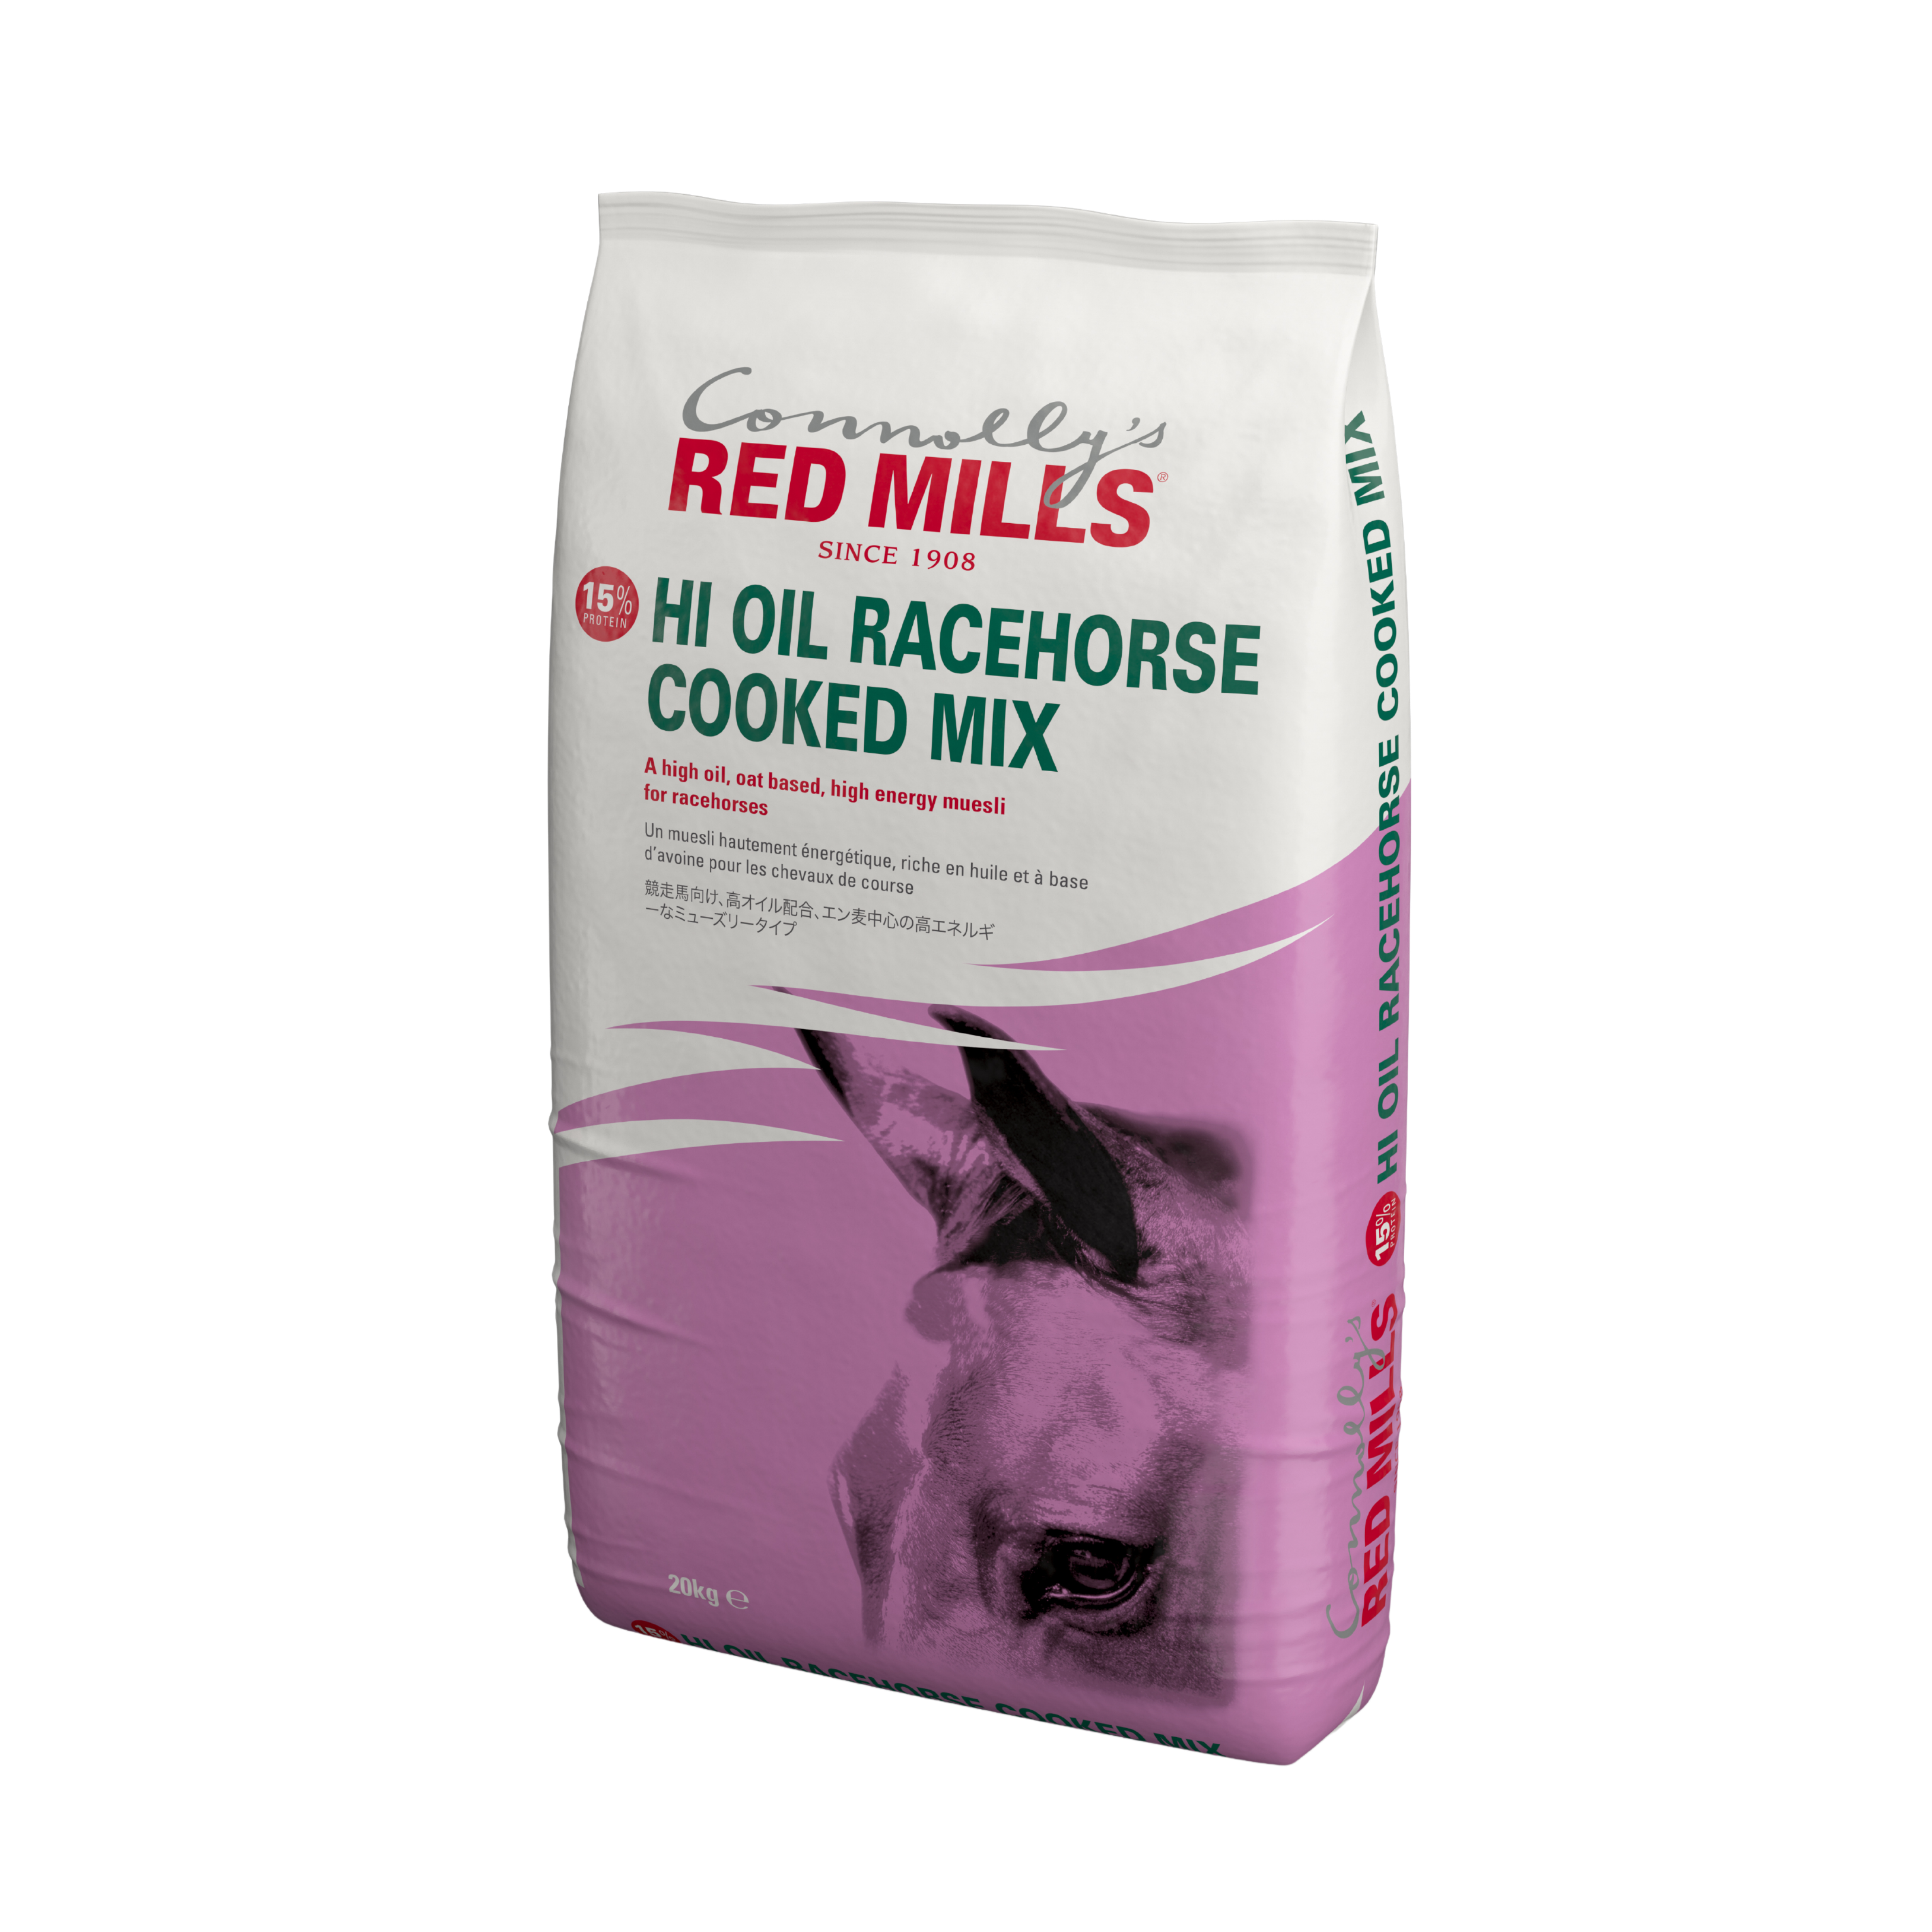 RED MILLS 15% Hi Oil Racehorse Mix